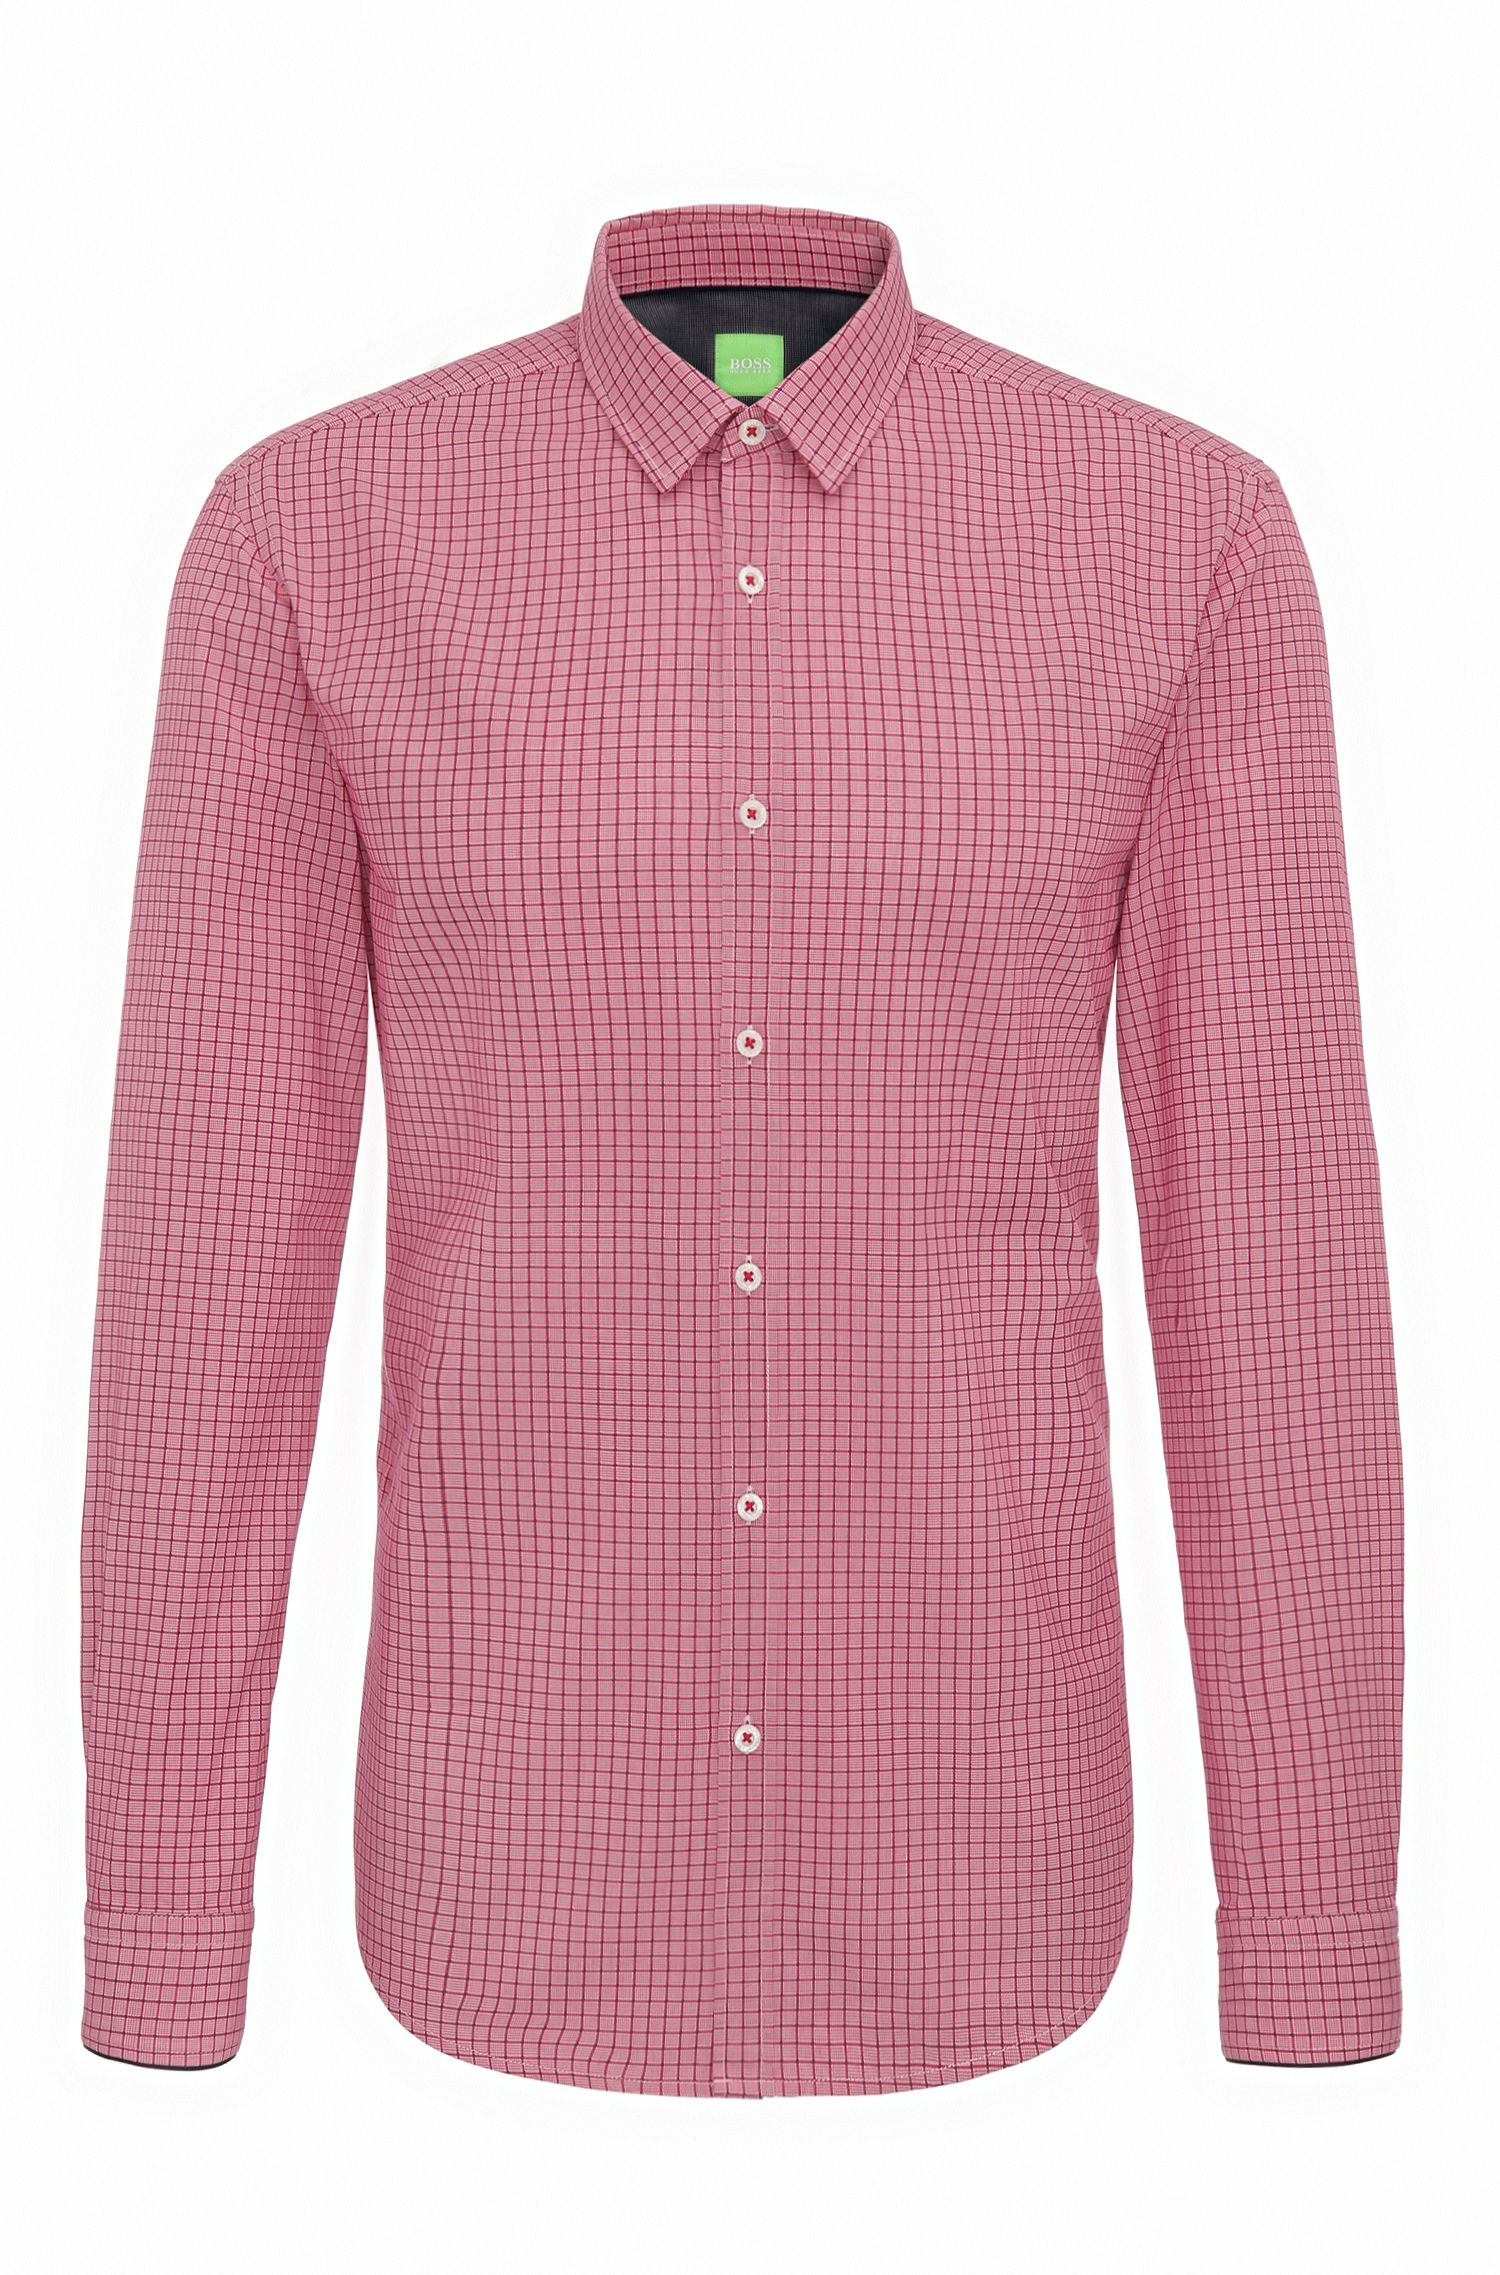 Windowpane Cotton Sport Shirt, Slim Fit | C-Bia, Pink